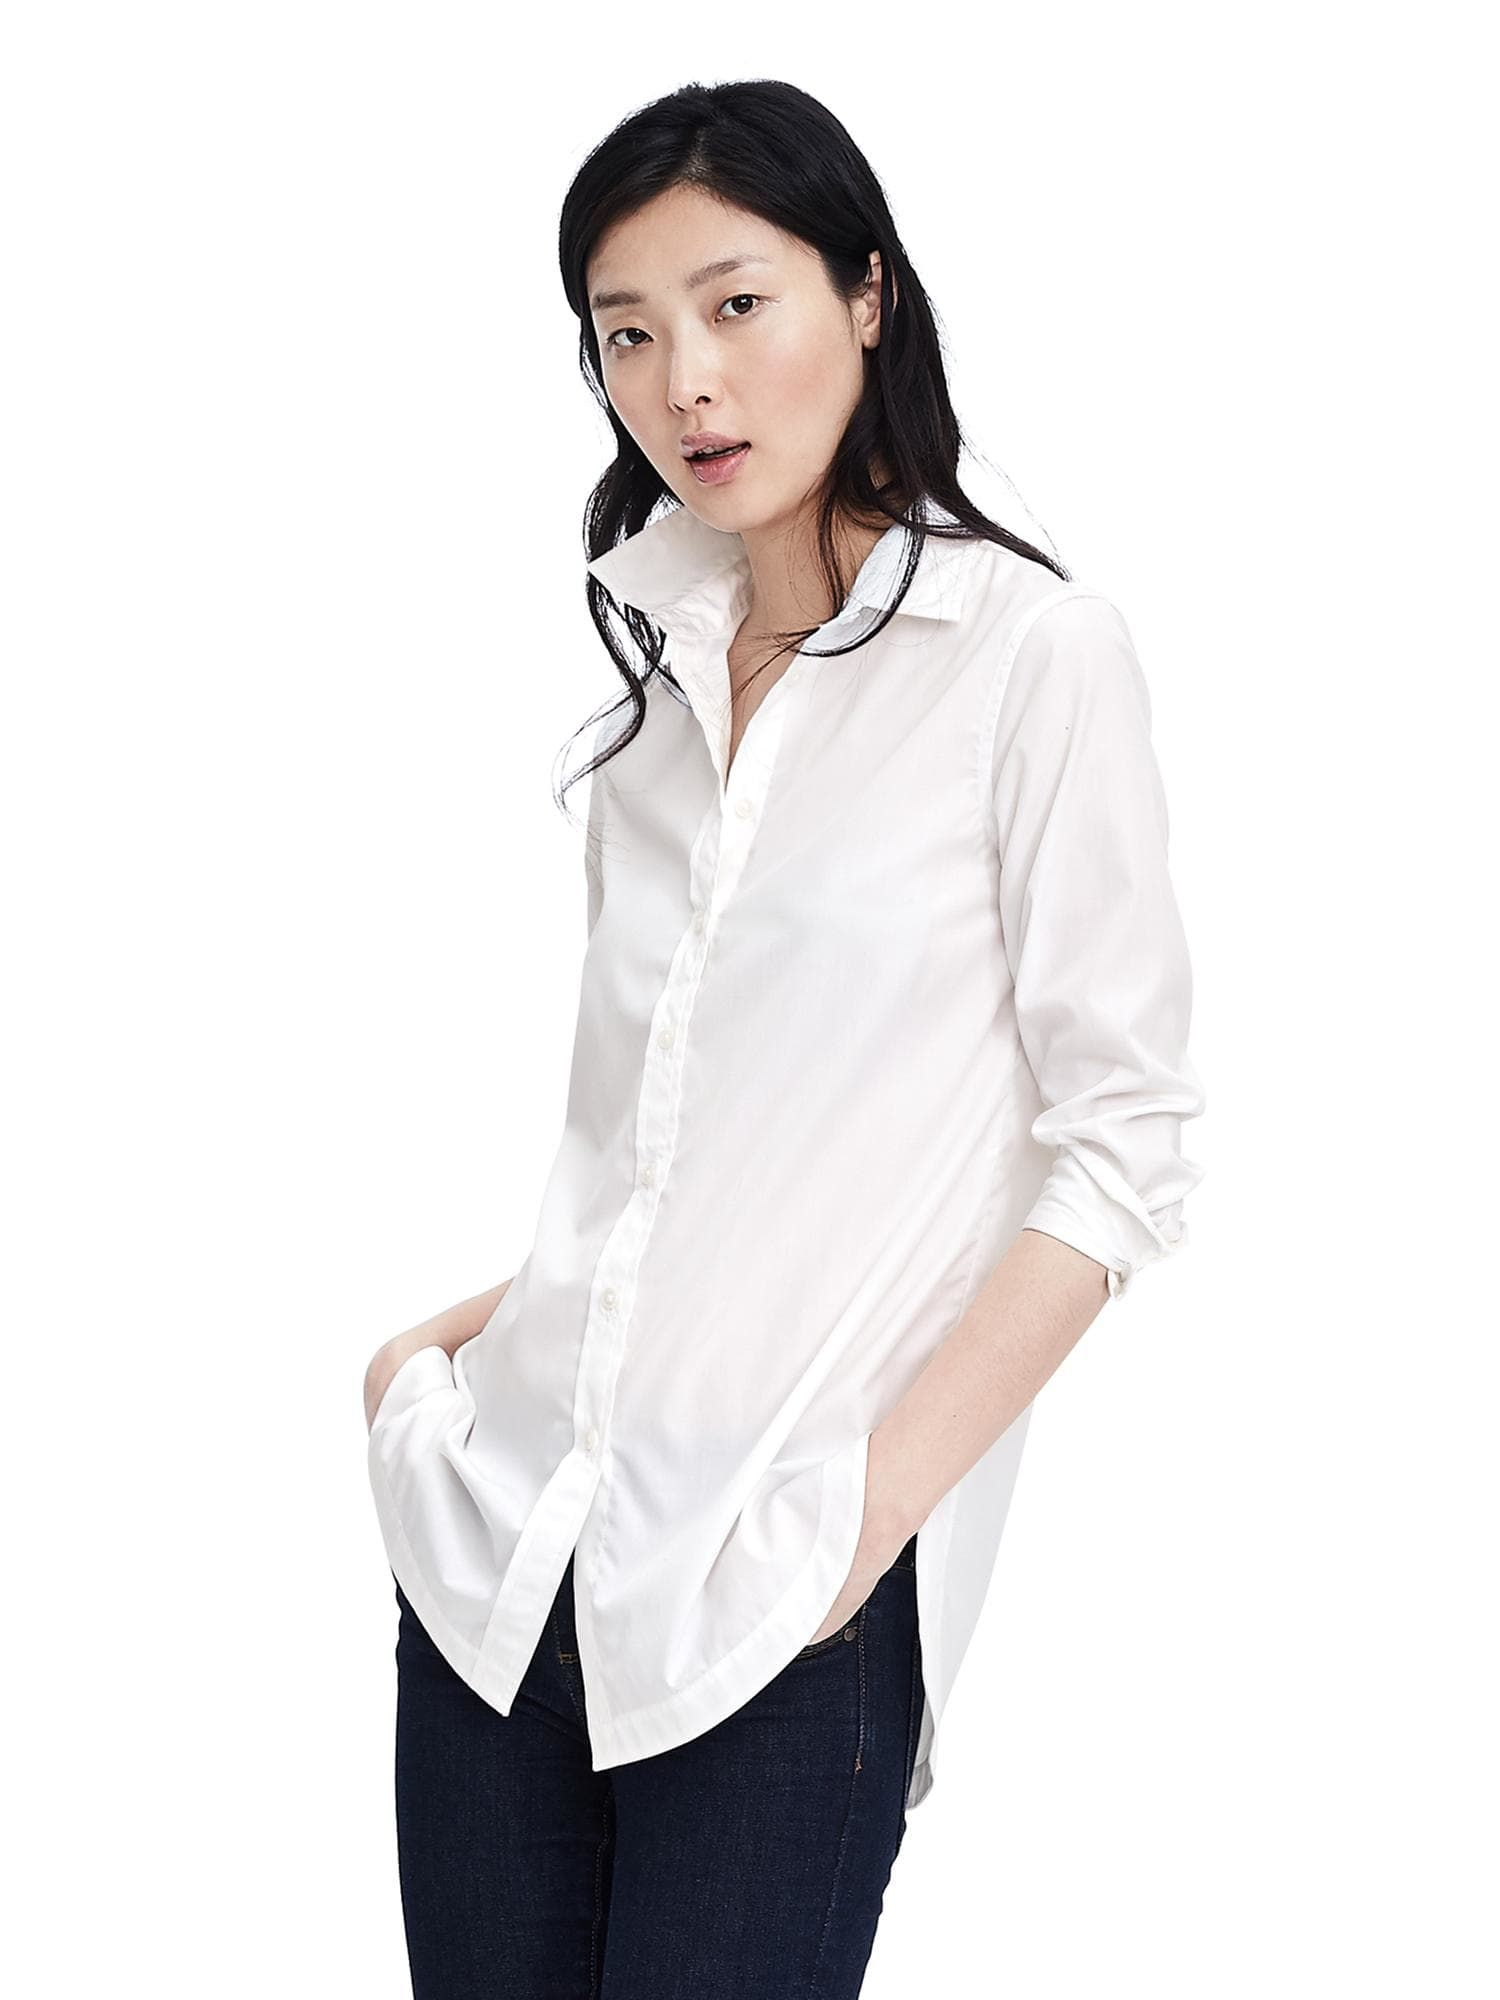 Banana Republic. Oversized white shirts 😍 White long